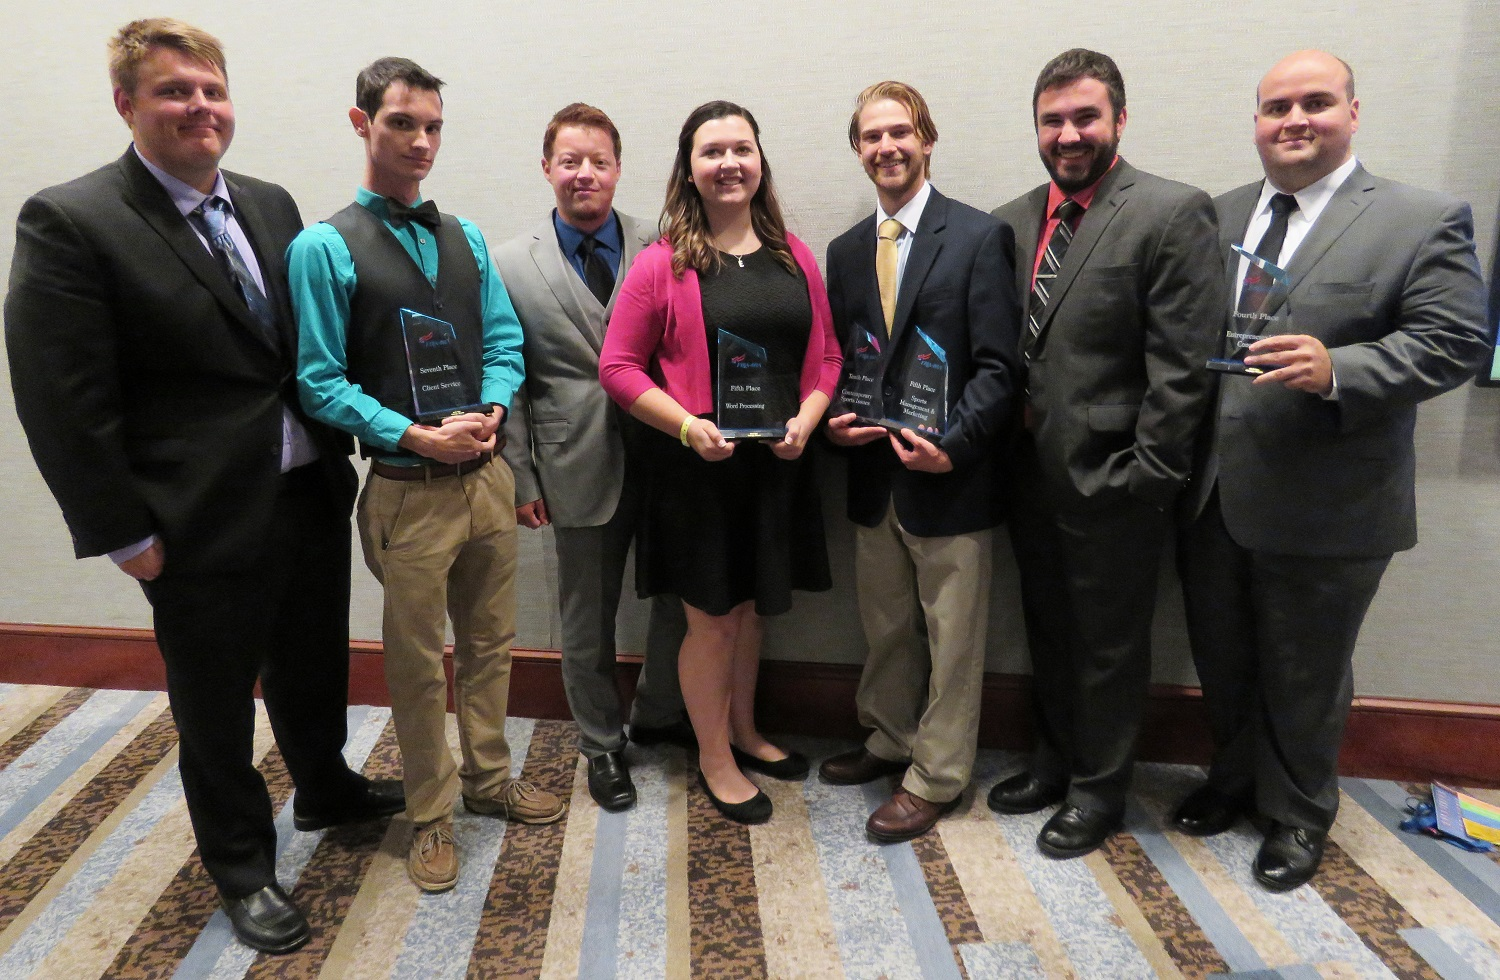 PBL members compete at national conference